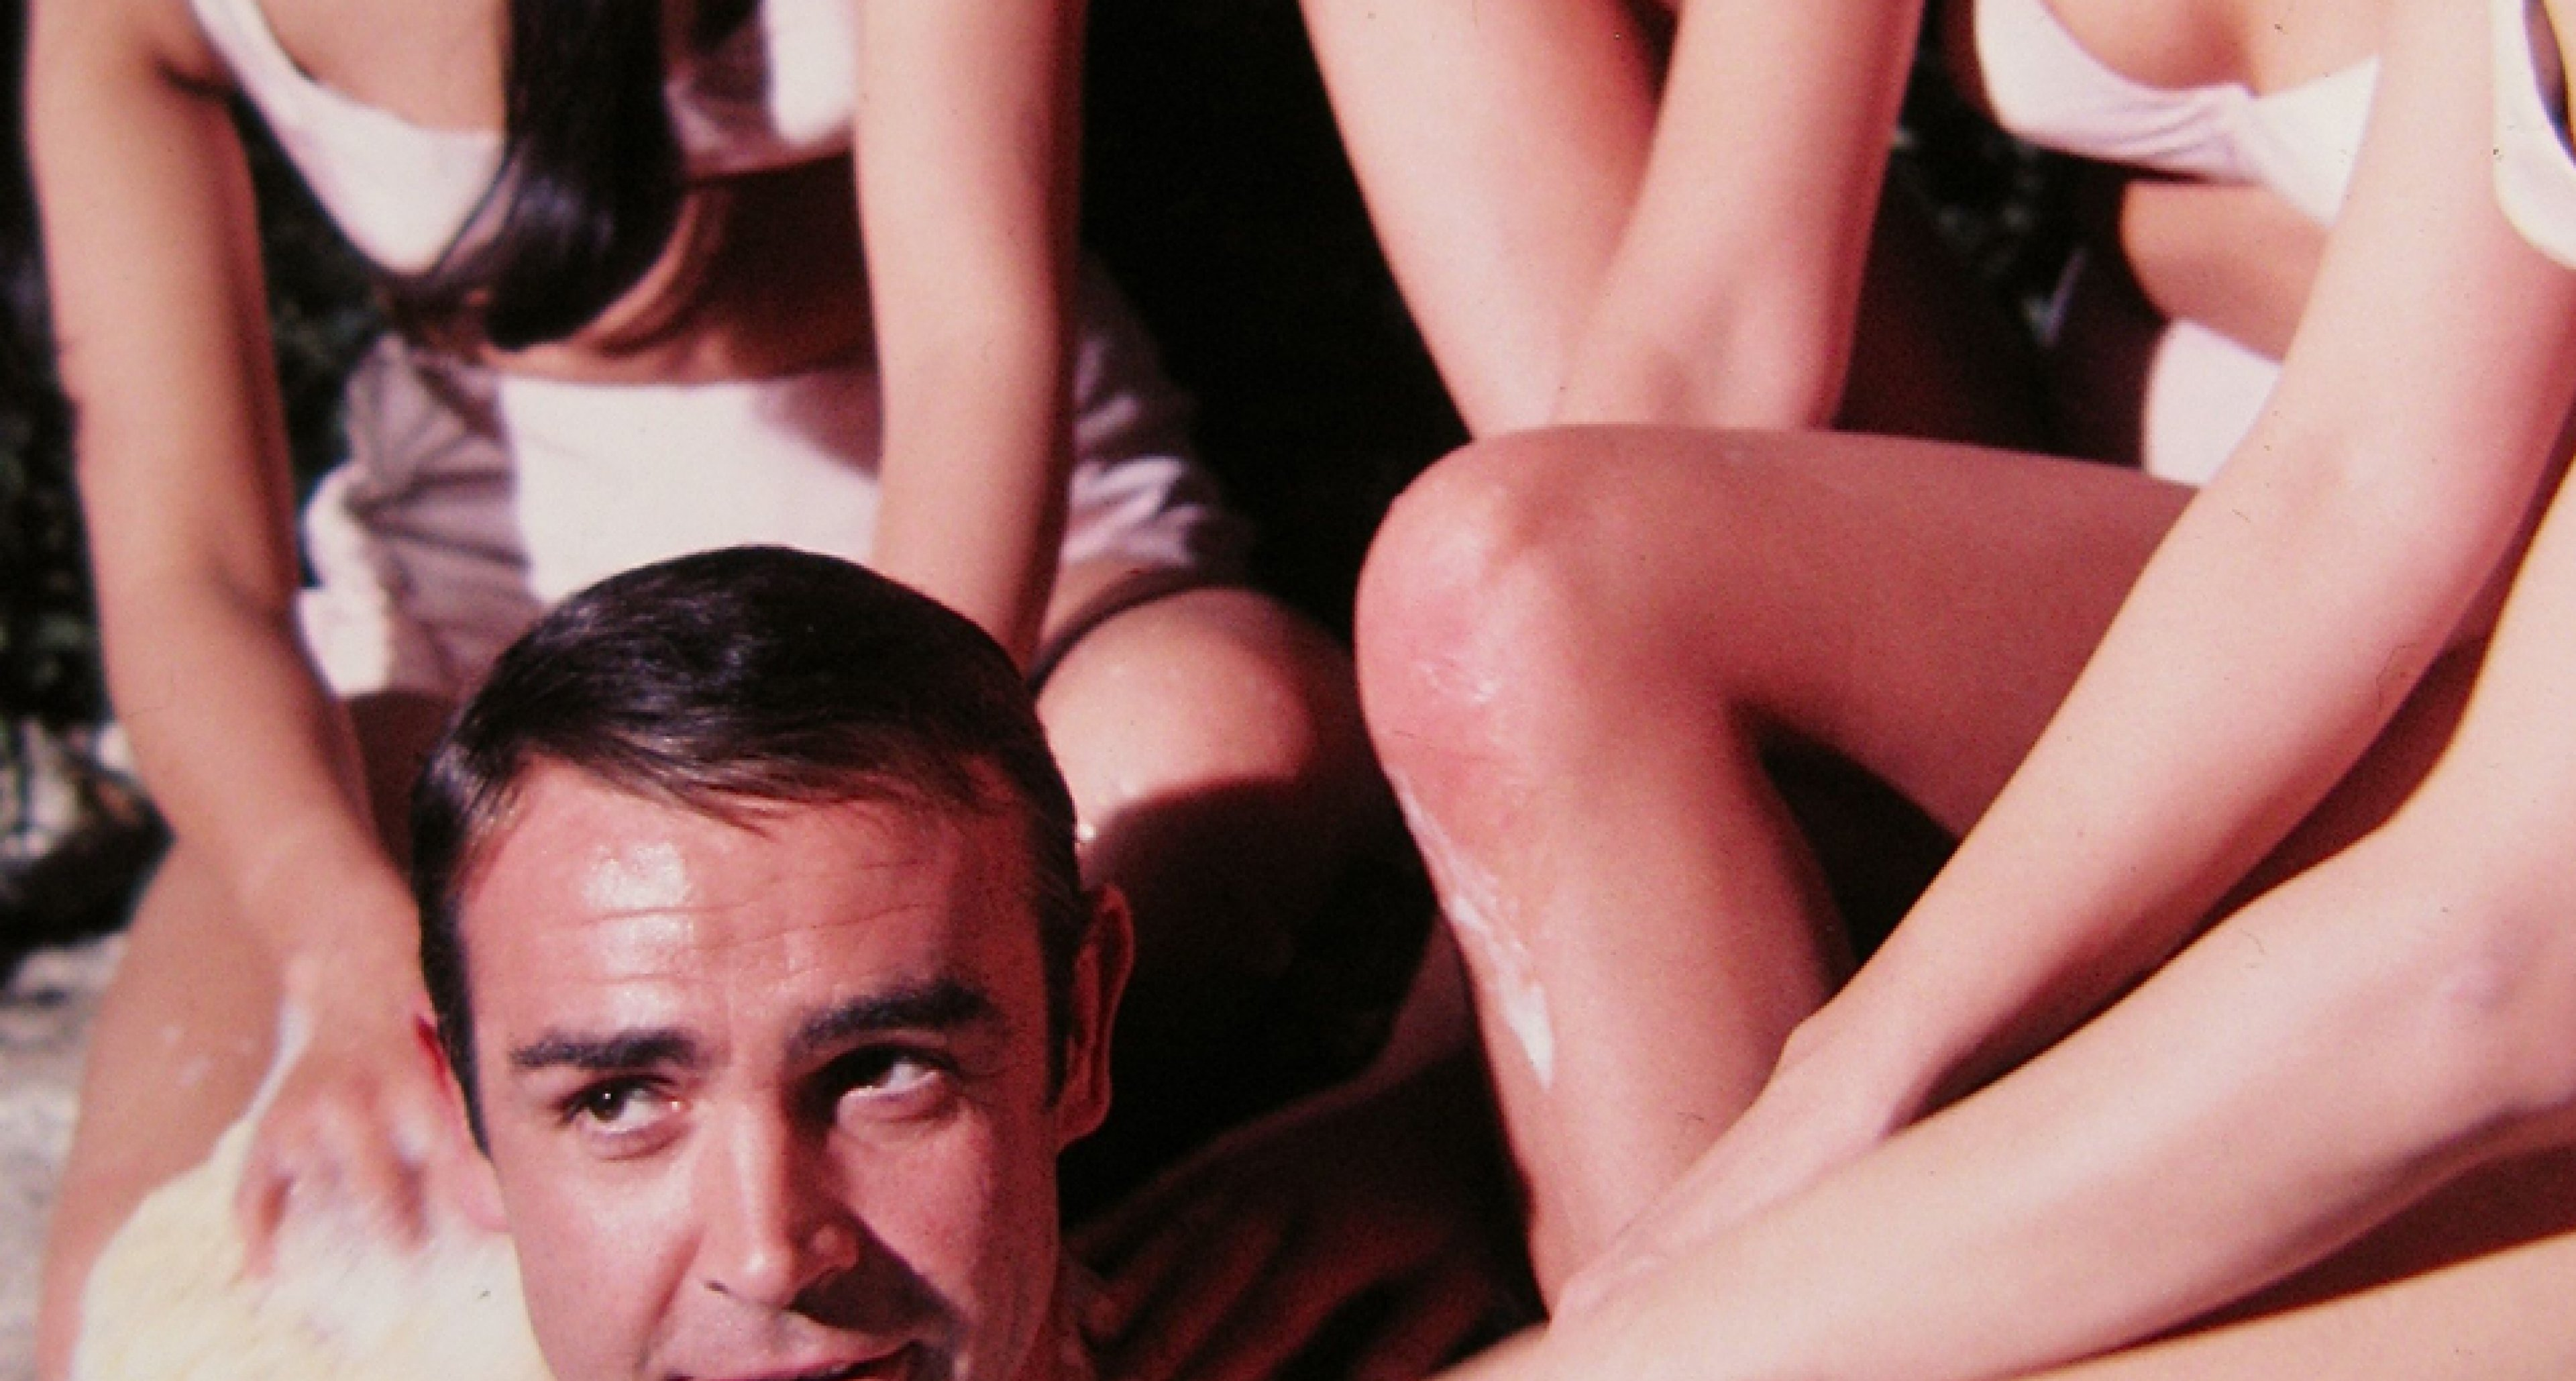 Sean Connery as James Bond in 'You Only Live Twice'.